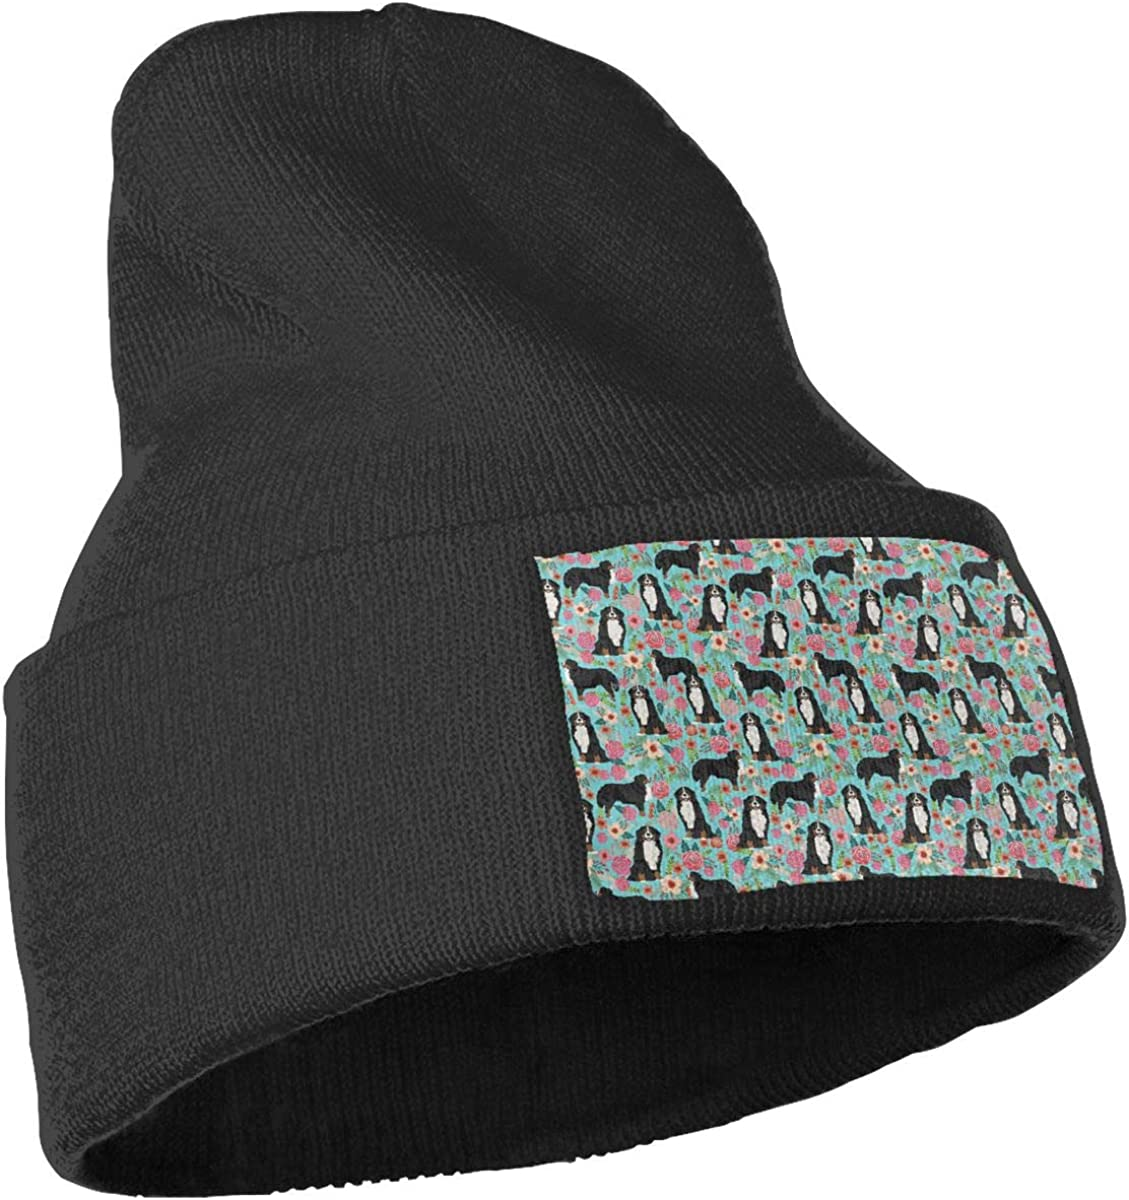 Pet Dog Floral Unisex Stretchy Serious Style Beanie Hat Skull Jogging Cap